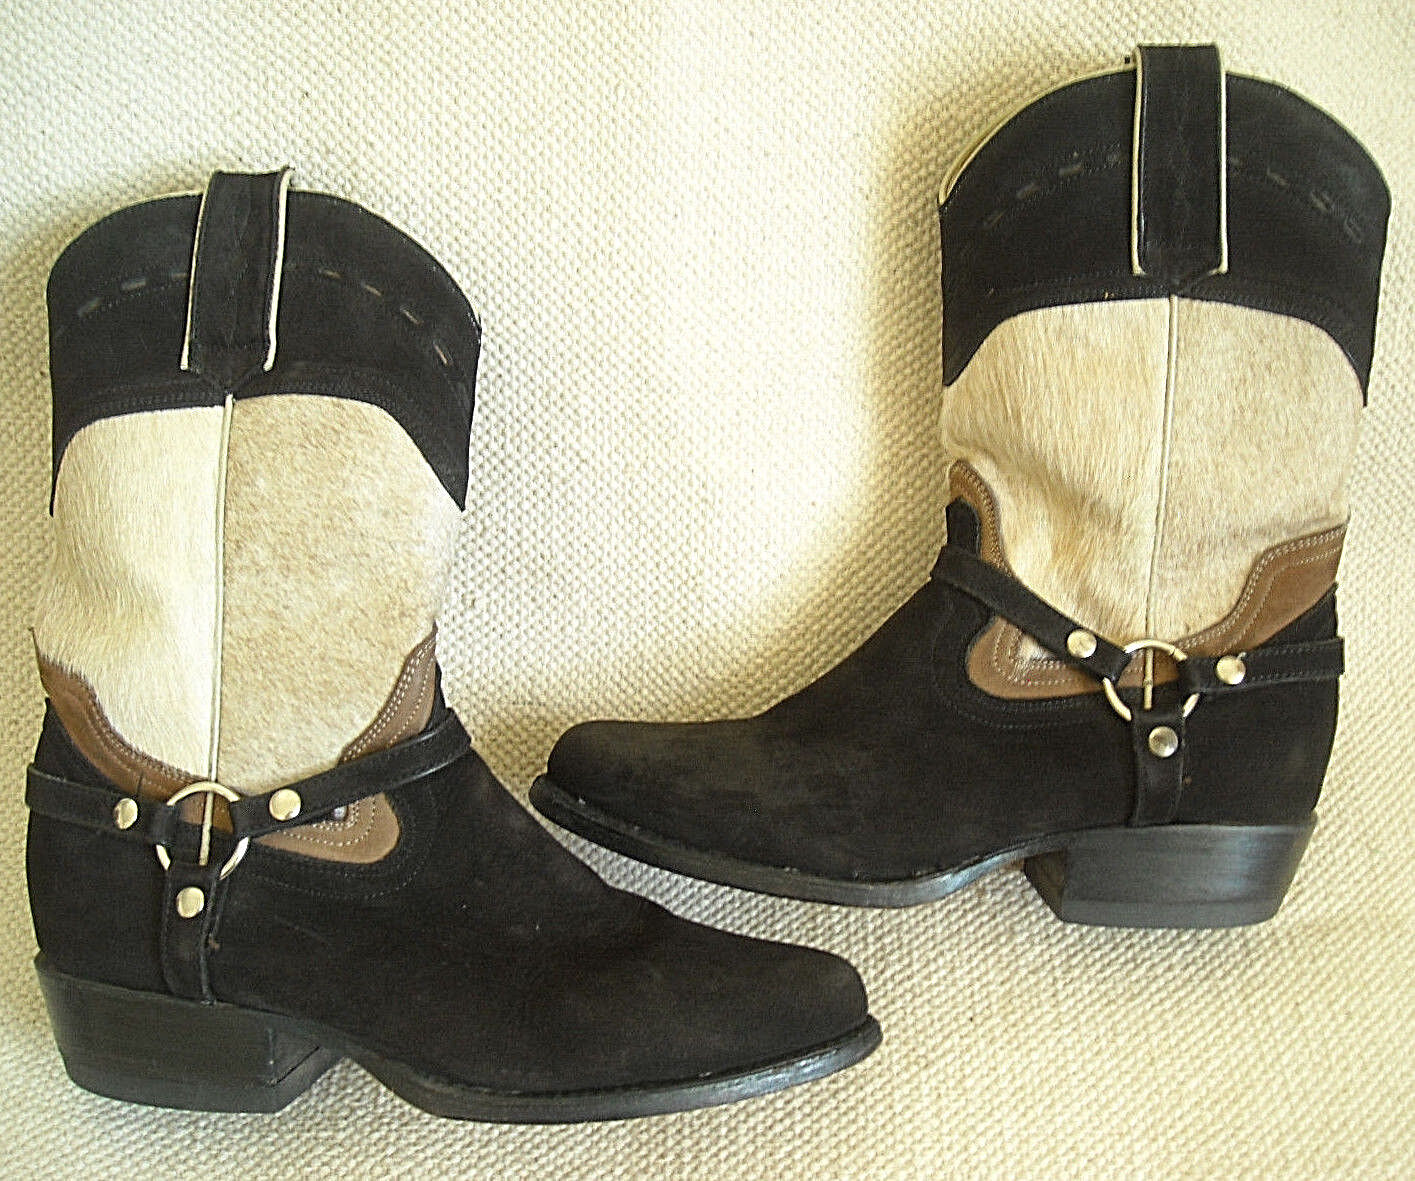 REBELDE BOOTS - BROWN SUEDE w. PLATINUM, WESTERN BOOTS - SIZE  25-1 2 (MEXICO)